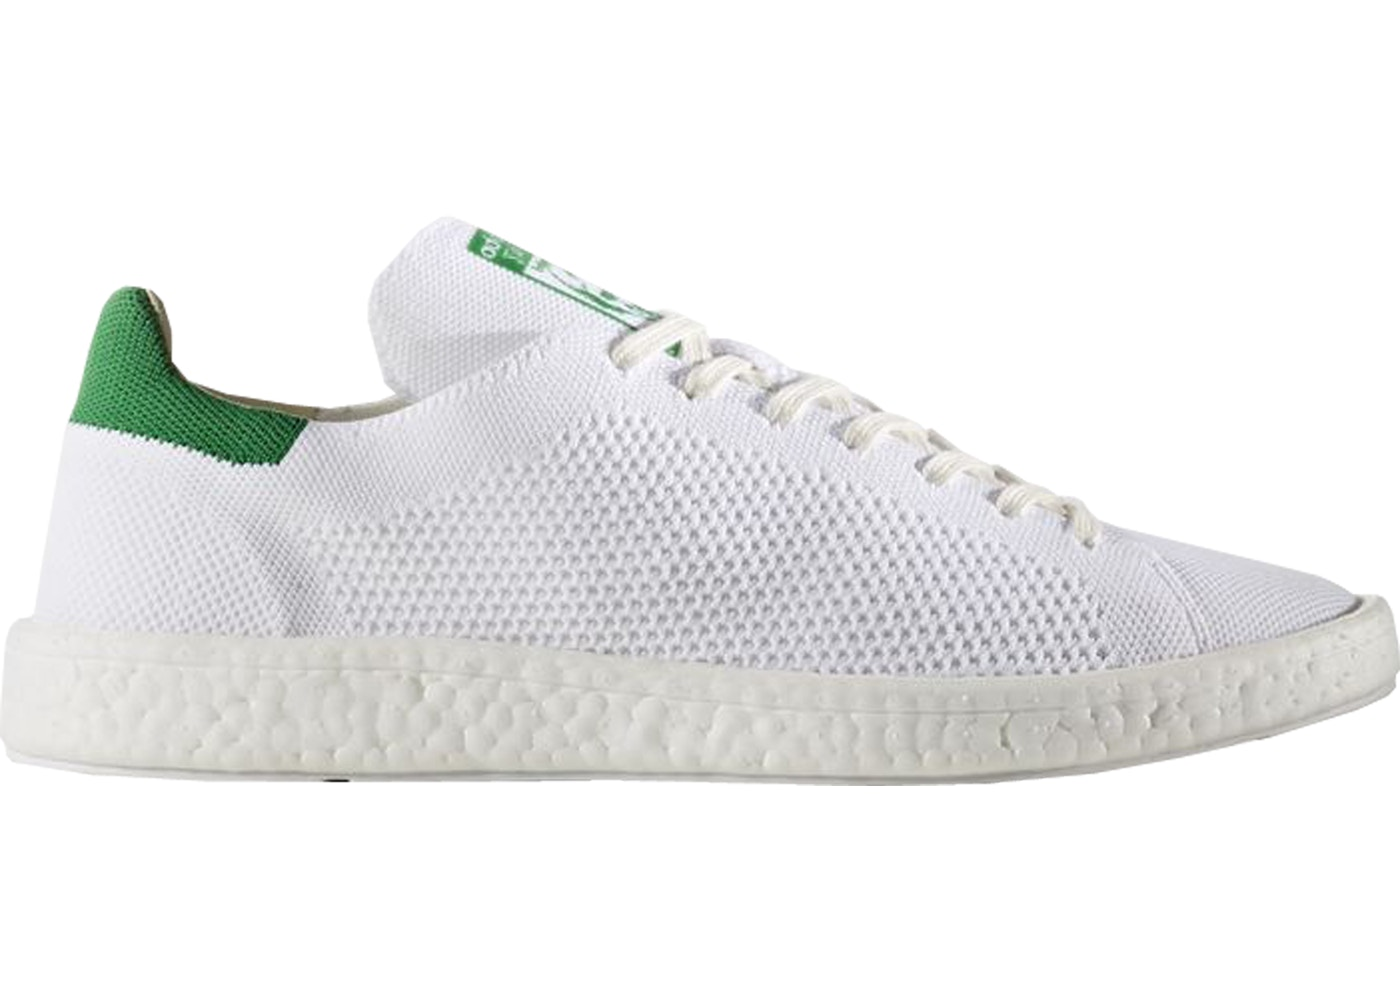 Stan Boost 5 Sell Adidas Or Smith Ask All Size 8 Bids View zz46wx